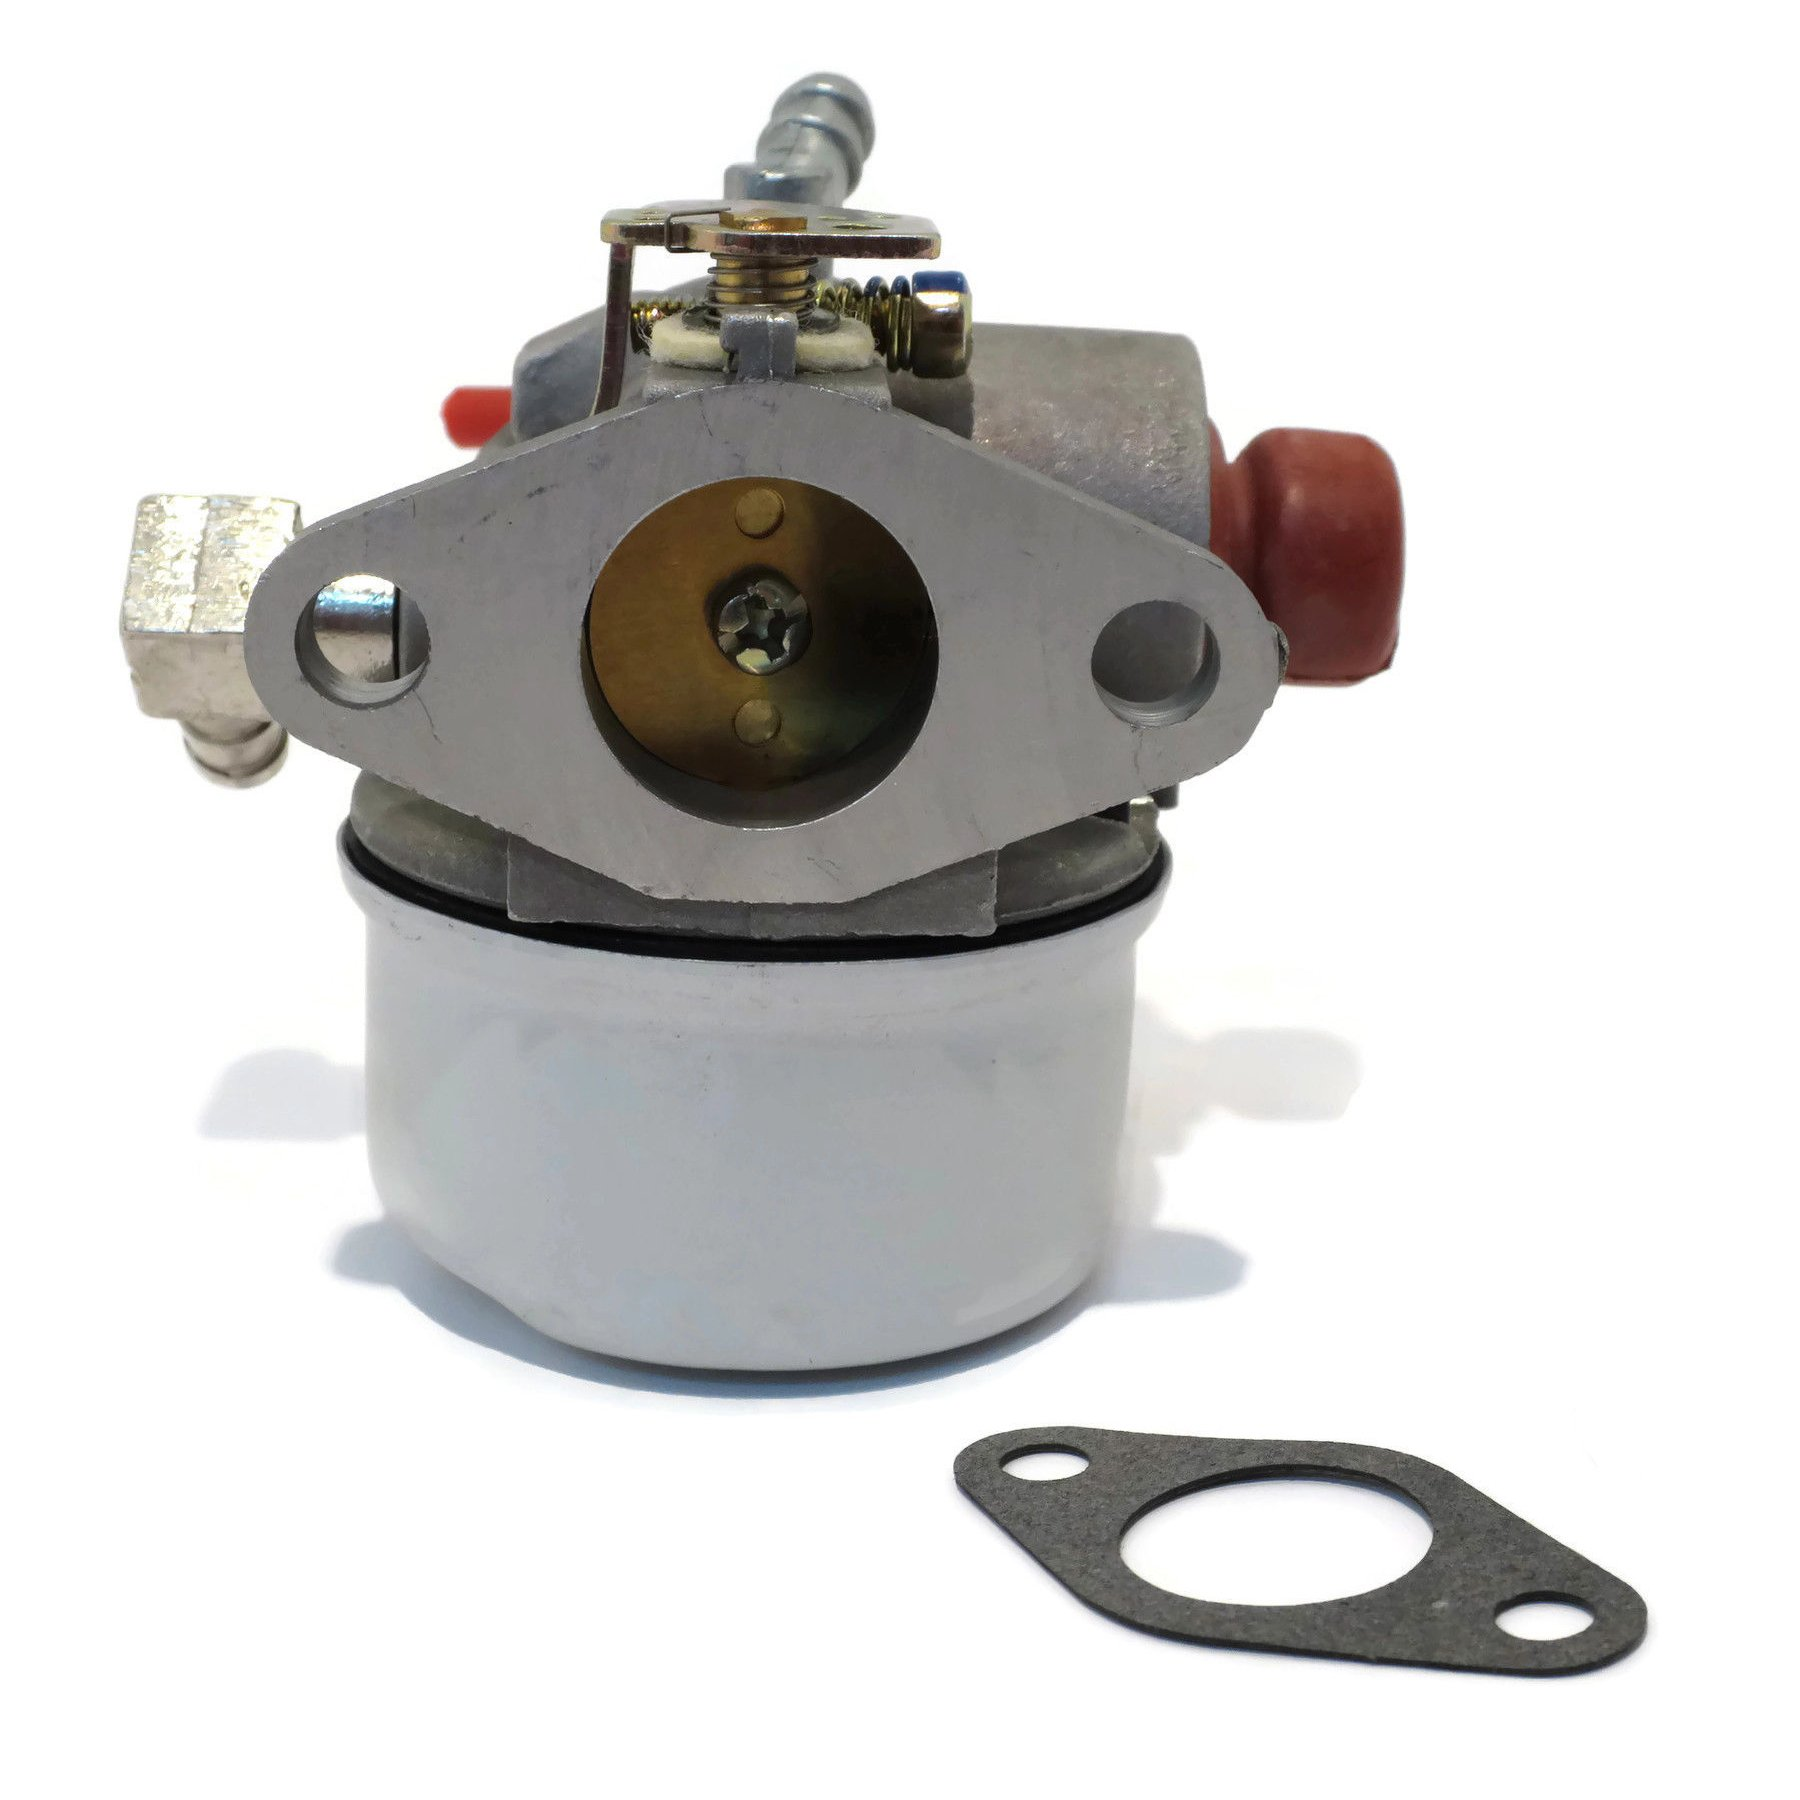 HIFROM(TM) Replace Carburetor for Tecumseh 640026 640026A 640069 640076 640076A 640119 Lawn Mower Carb New